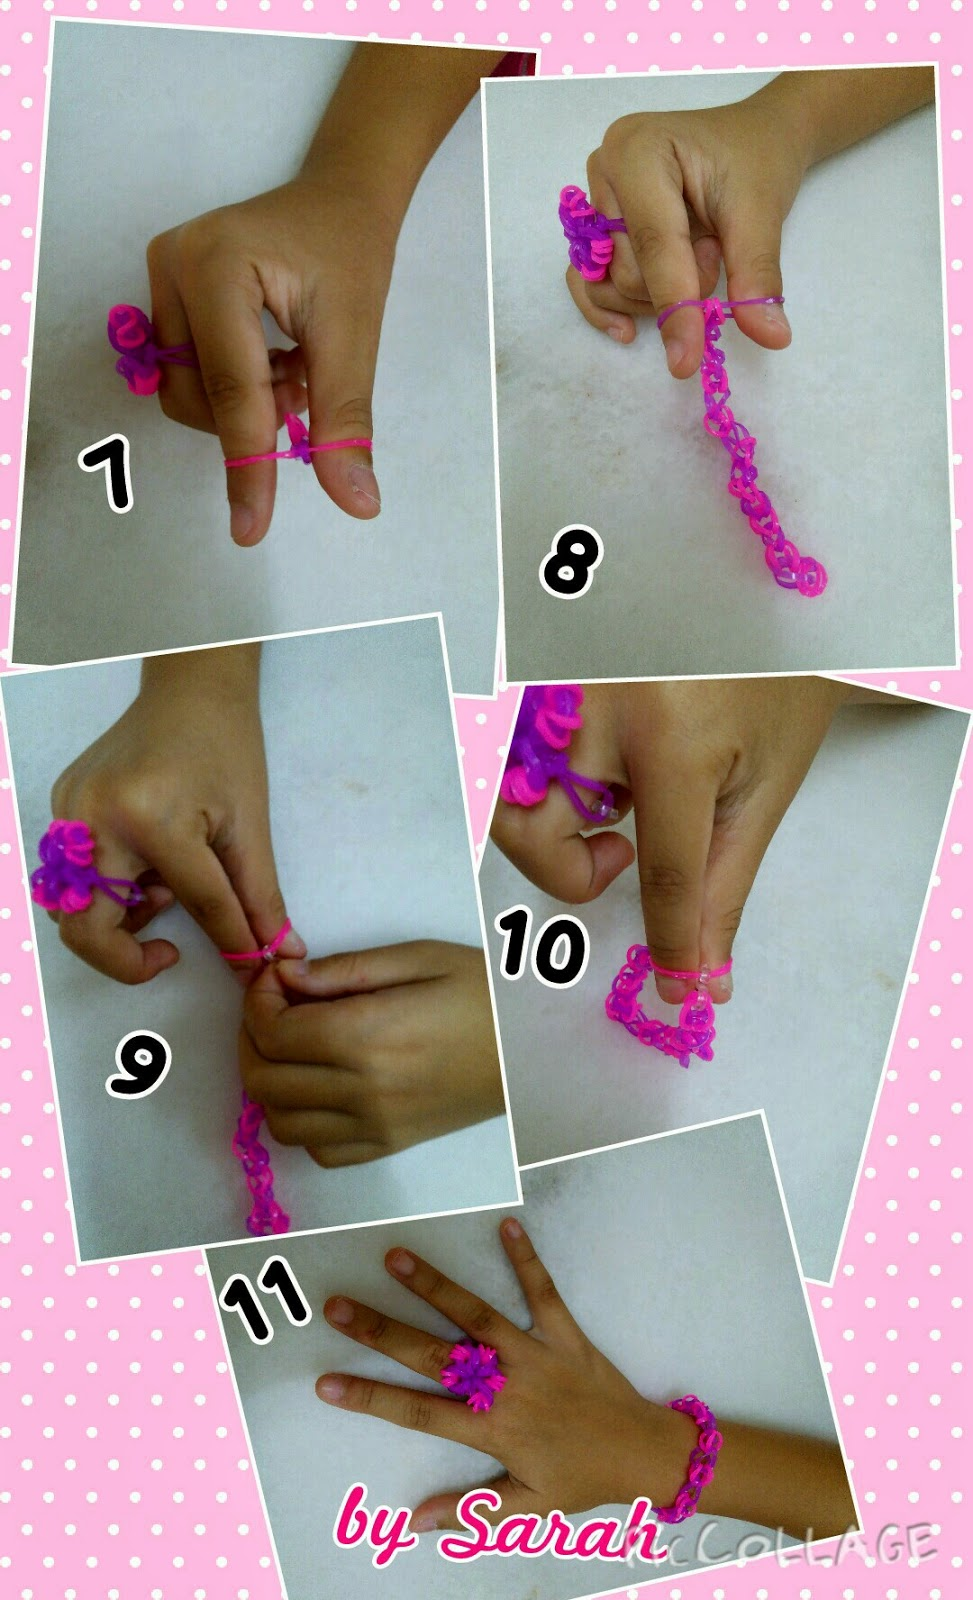 You Need 10 Purple Bands And Pink For A Simple Bracelet First Loop The Band To Your Thumb Twist It Make Cross